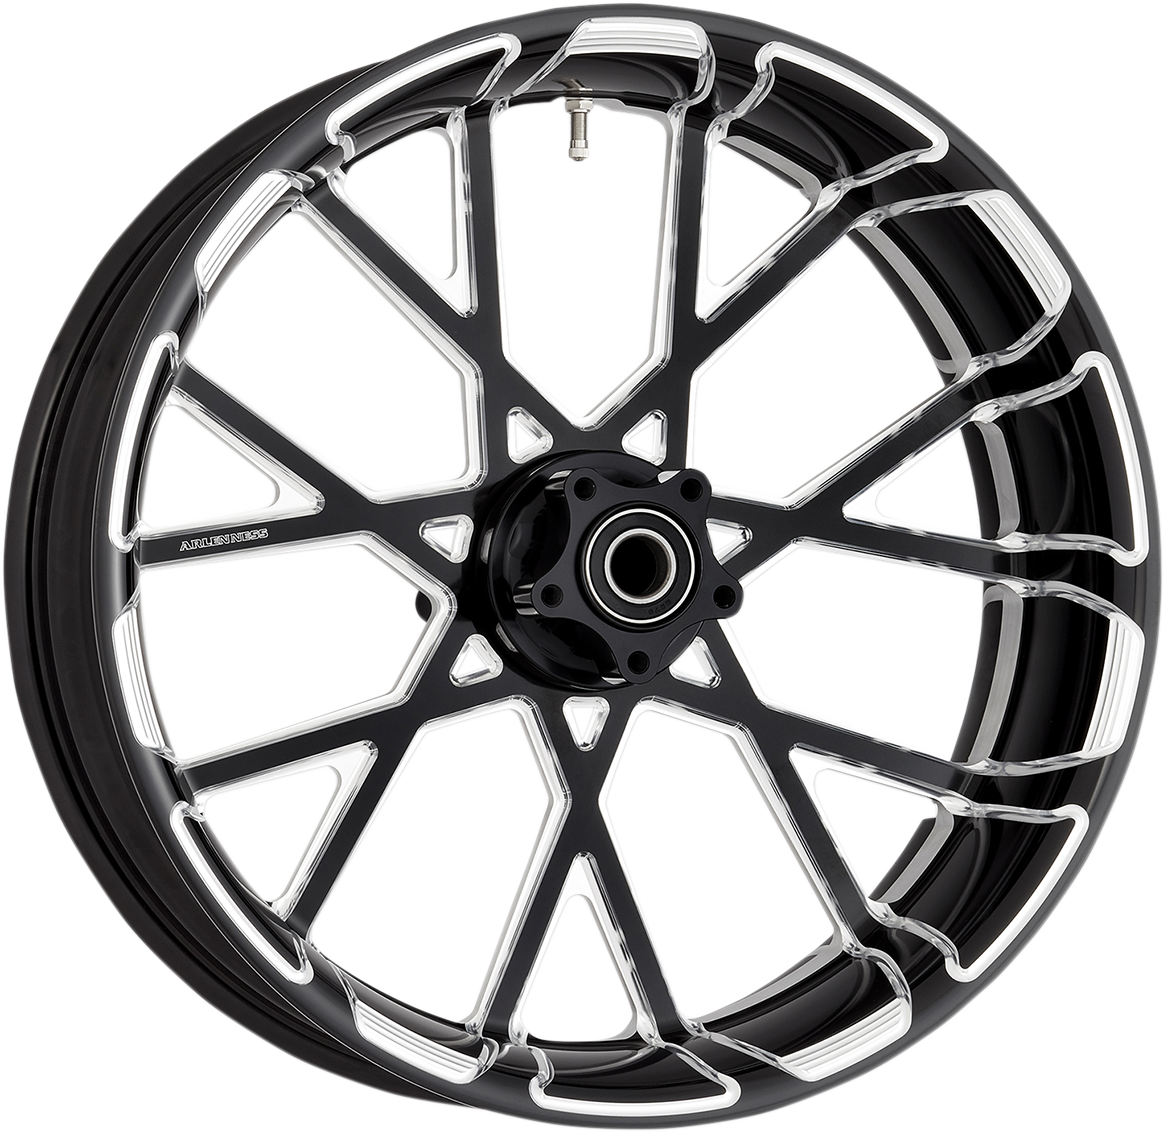 "Arlen Ness Procross Black 18"" x 5.5 ABS Rear Wheel for 09-19 Harley Touring FLHX"